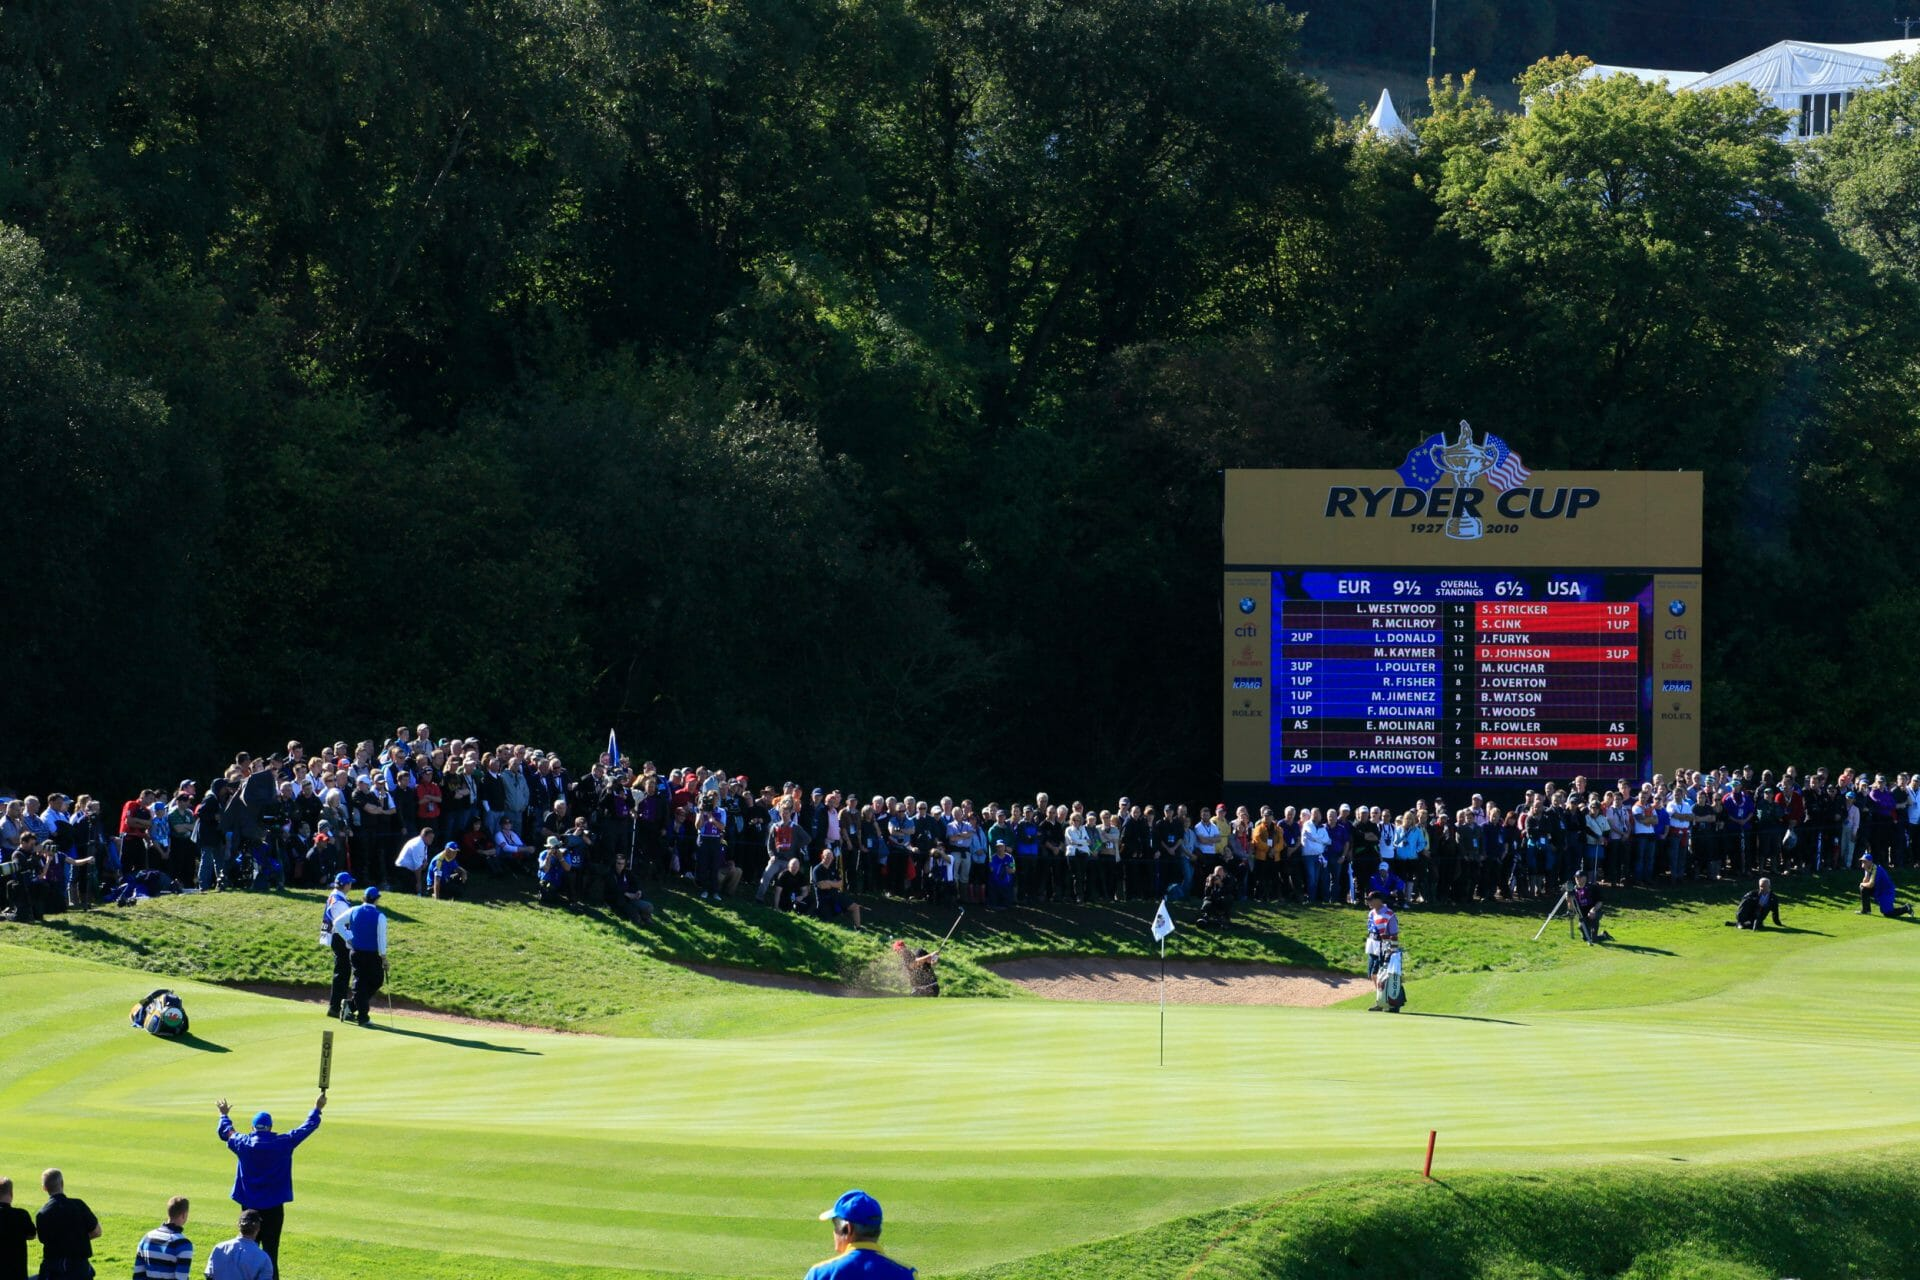 View of the 2010 Ryder Cup at The Celtic Manor Resort, Usk Valley, Wales, United Kingdom